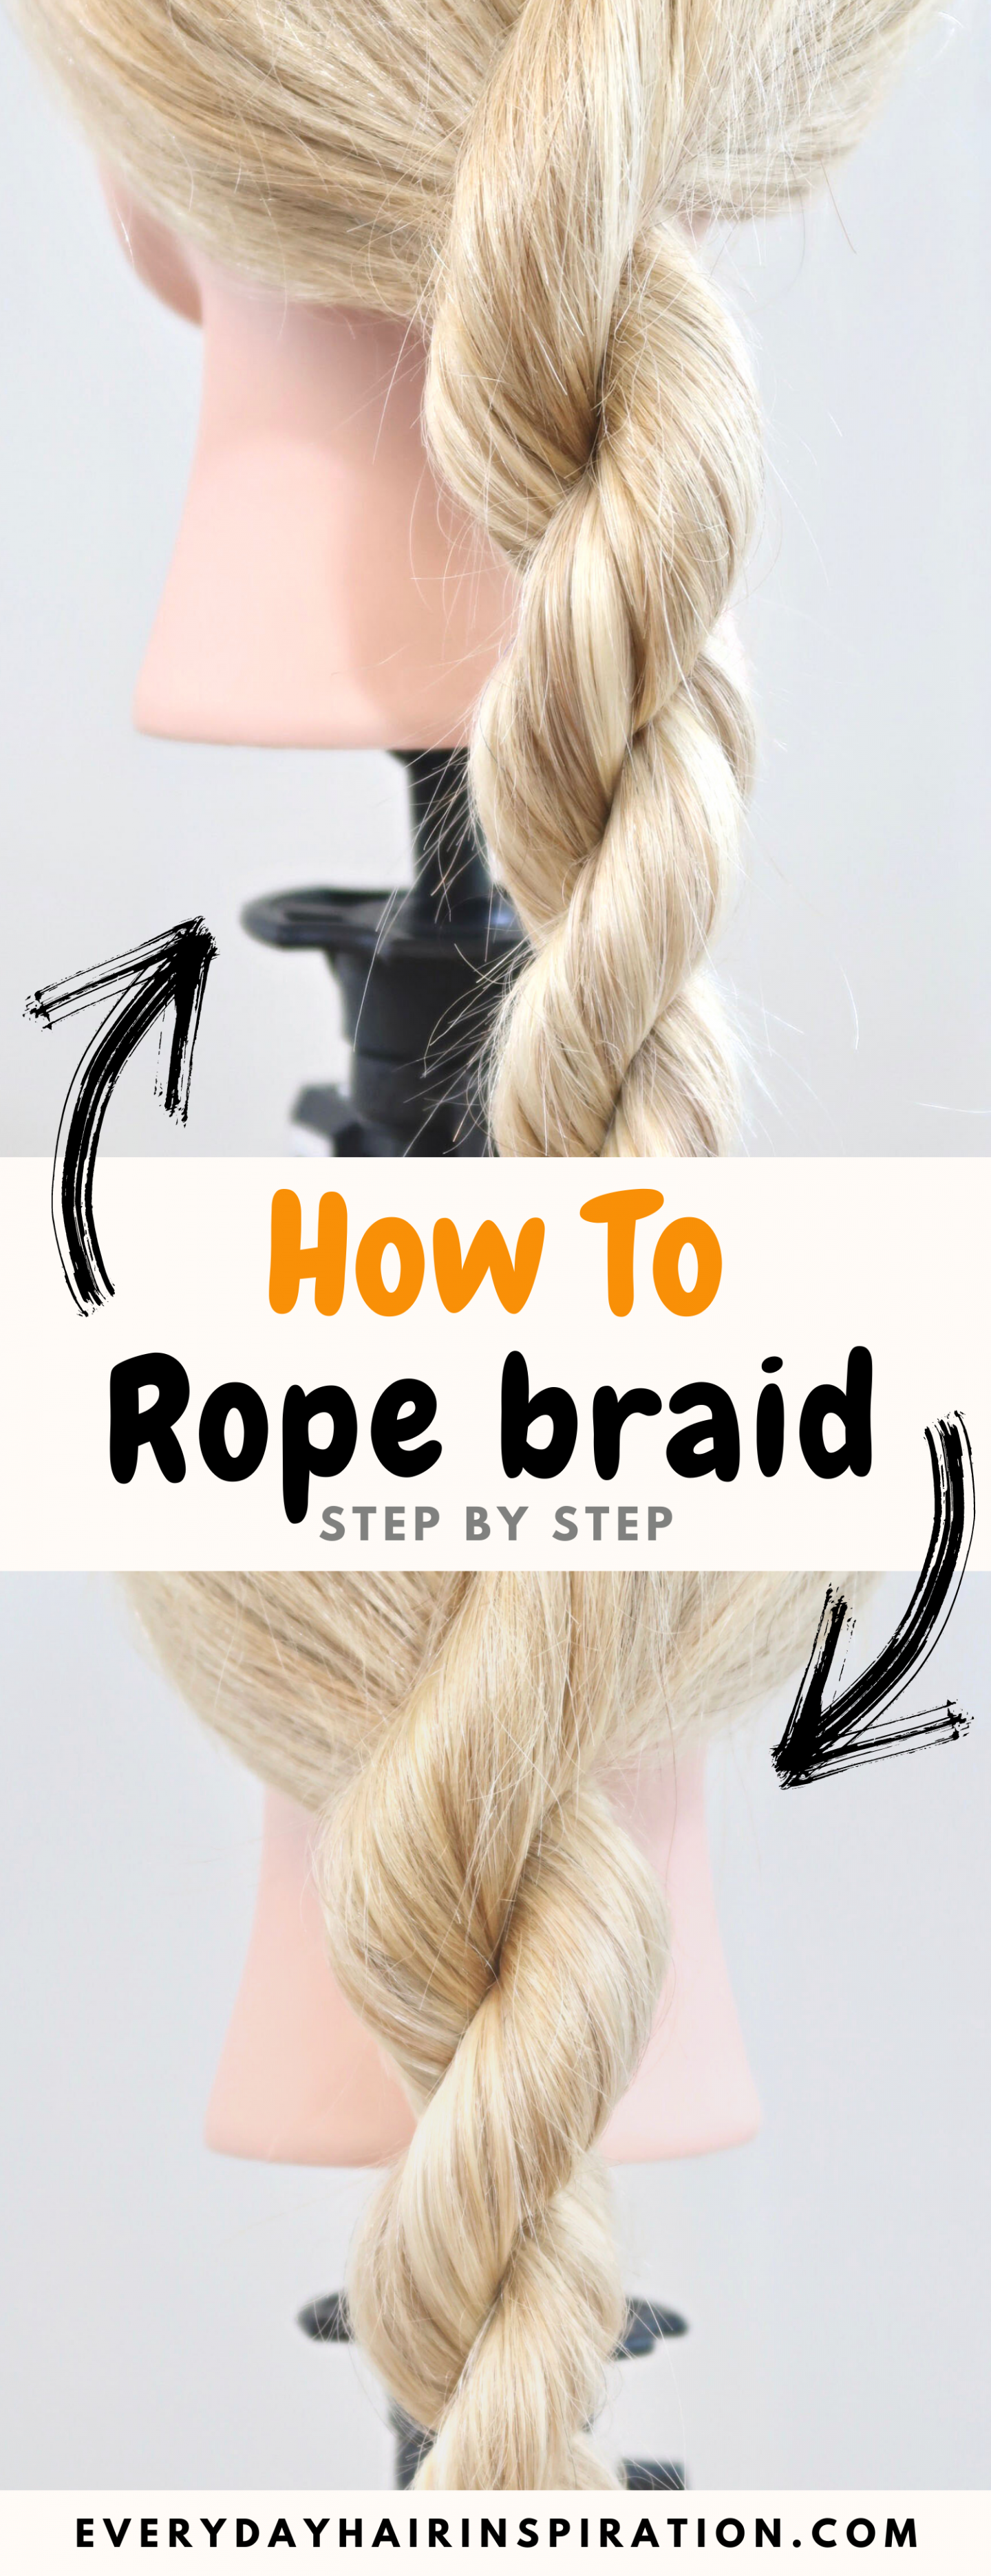 """Pictures of 2 rope braids with text overlay saying """"How to rope braid step by step"""" with 2 arrows pointing to the braid"""